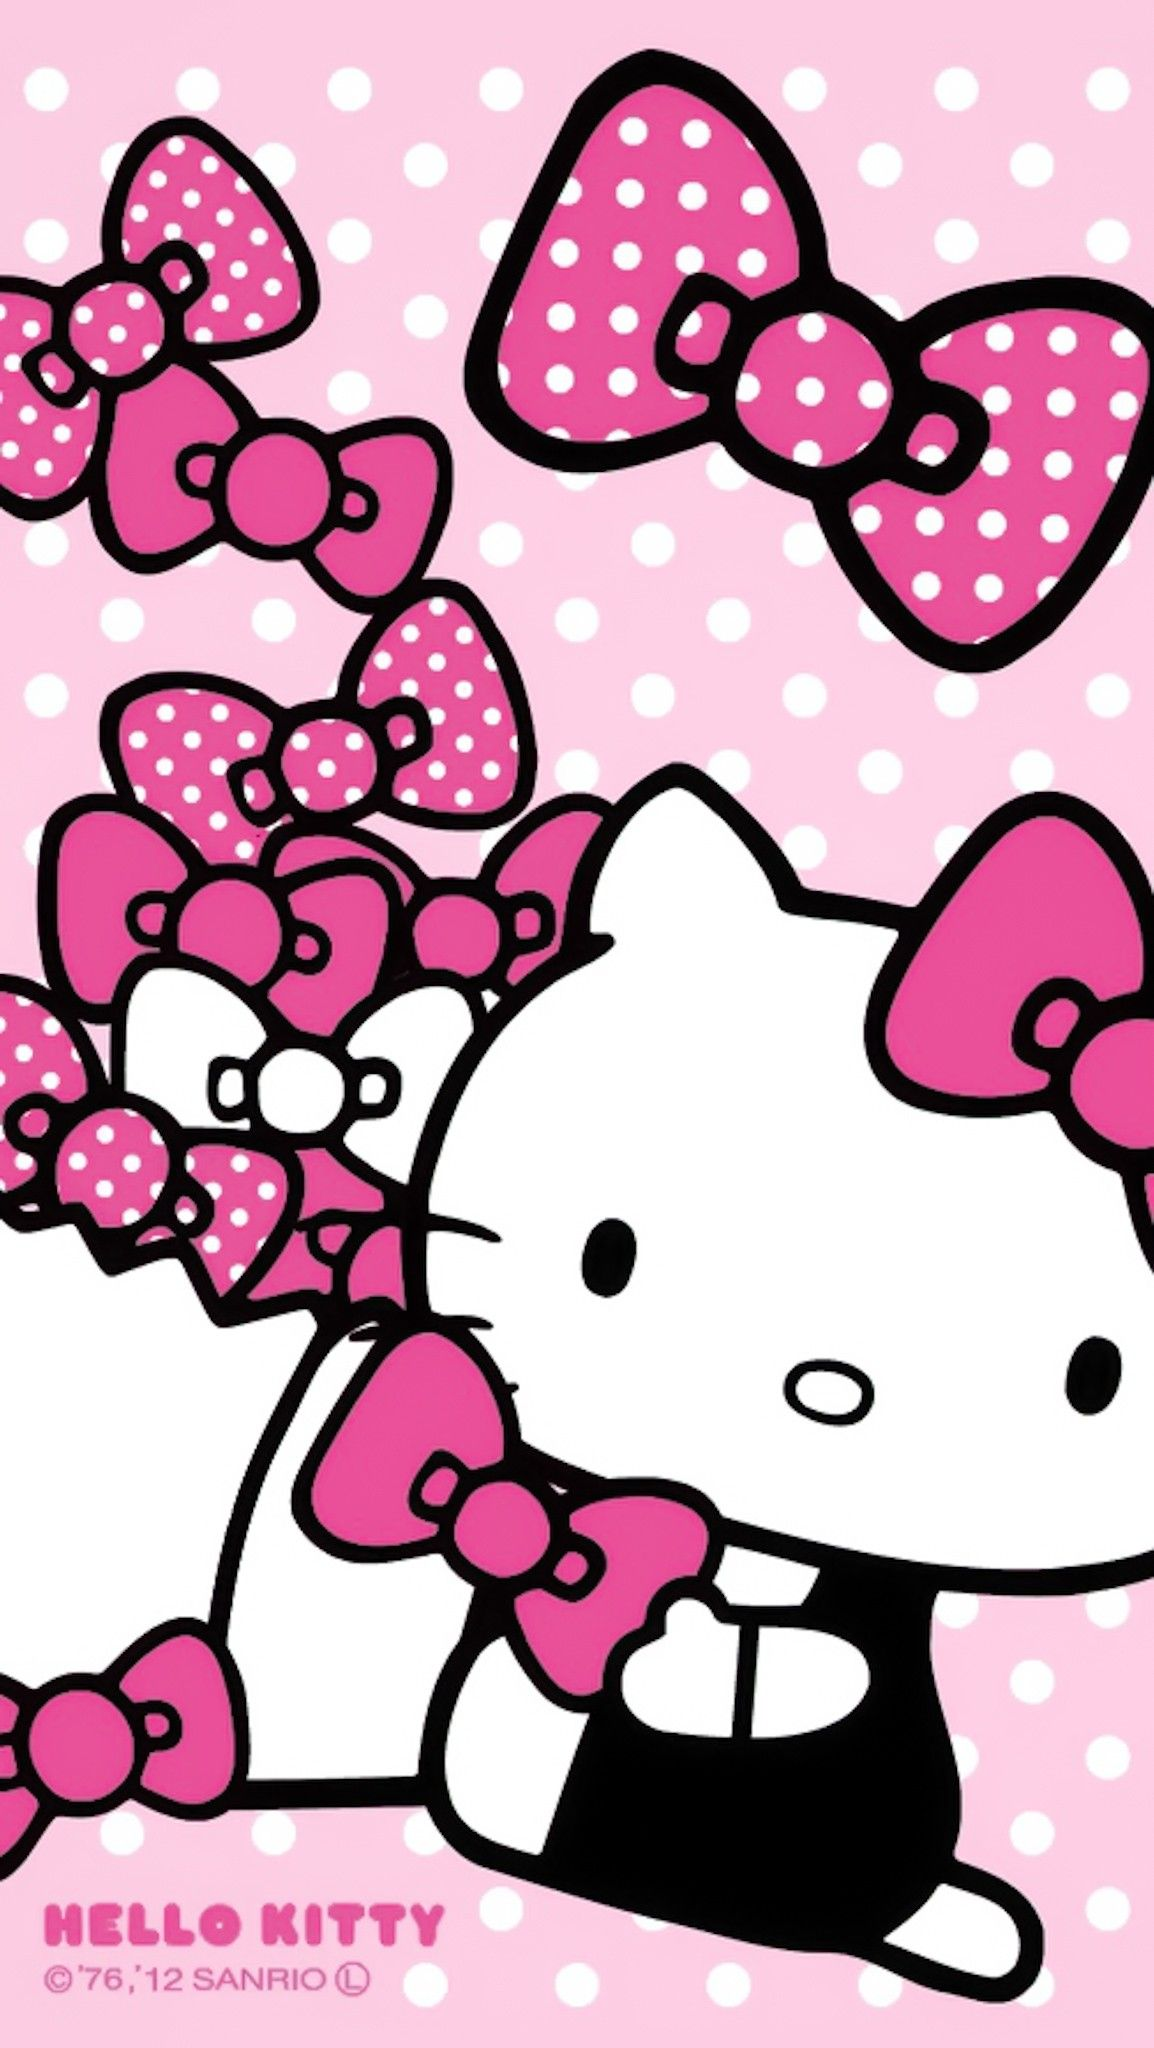 Pin By Aekkalisa On Hello Kitty Bg In 2020 Hello Kitty Wallpaper Hd Hello Kitty Backgrounds Hello Kitty Iphone Wallpaper